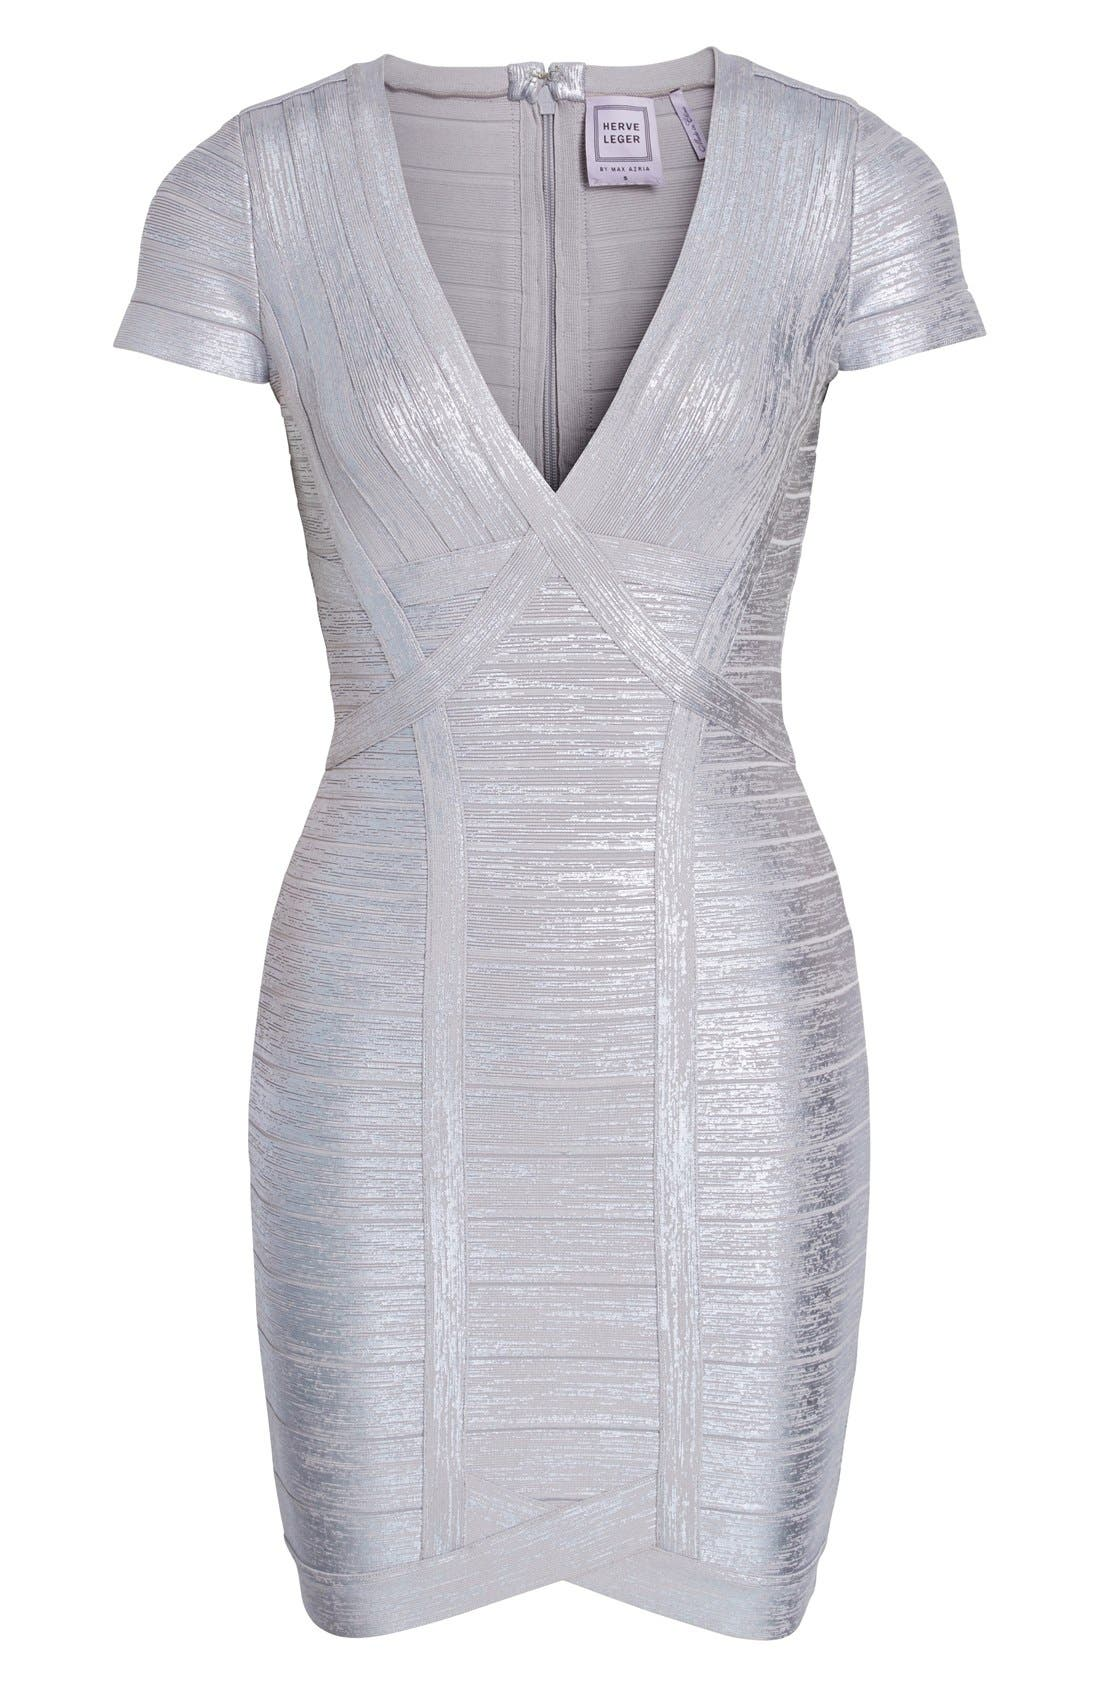 Alternate Image 4  - Herve Leger 'Klaudia' Woodgrain Metallic Foil Dress